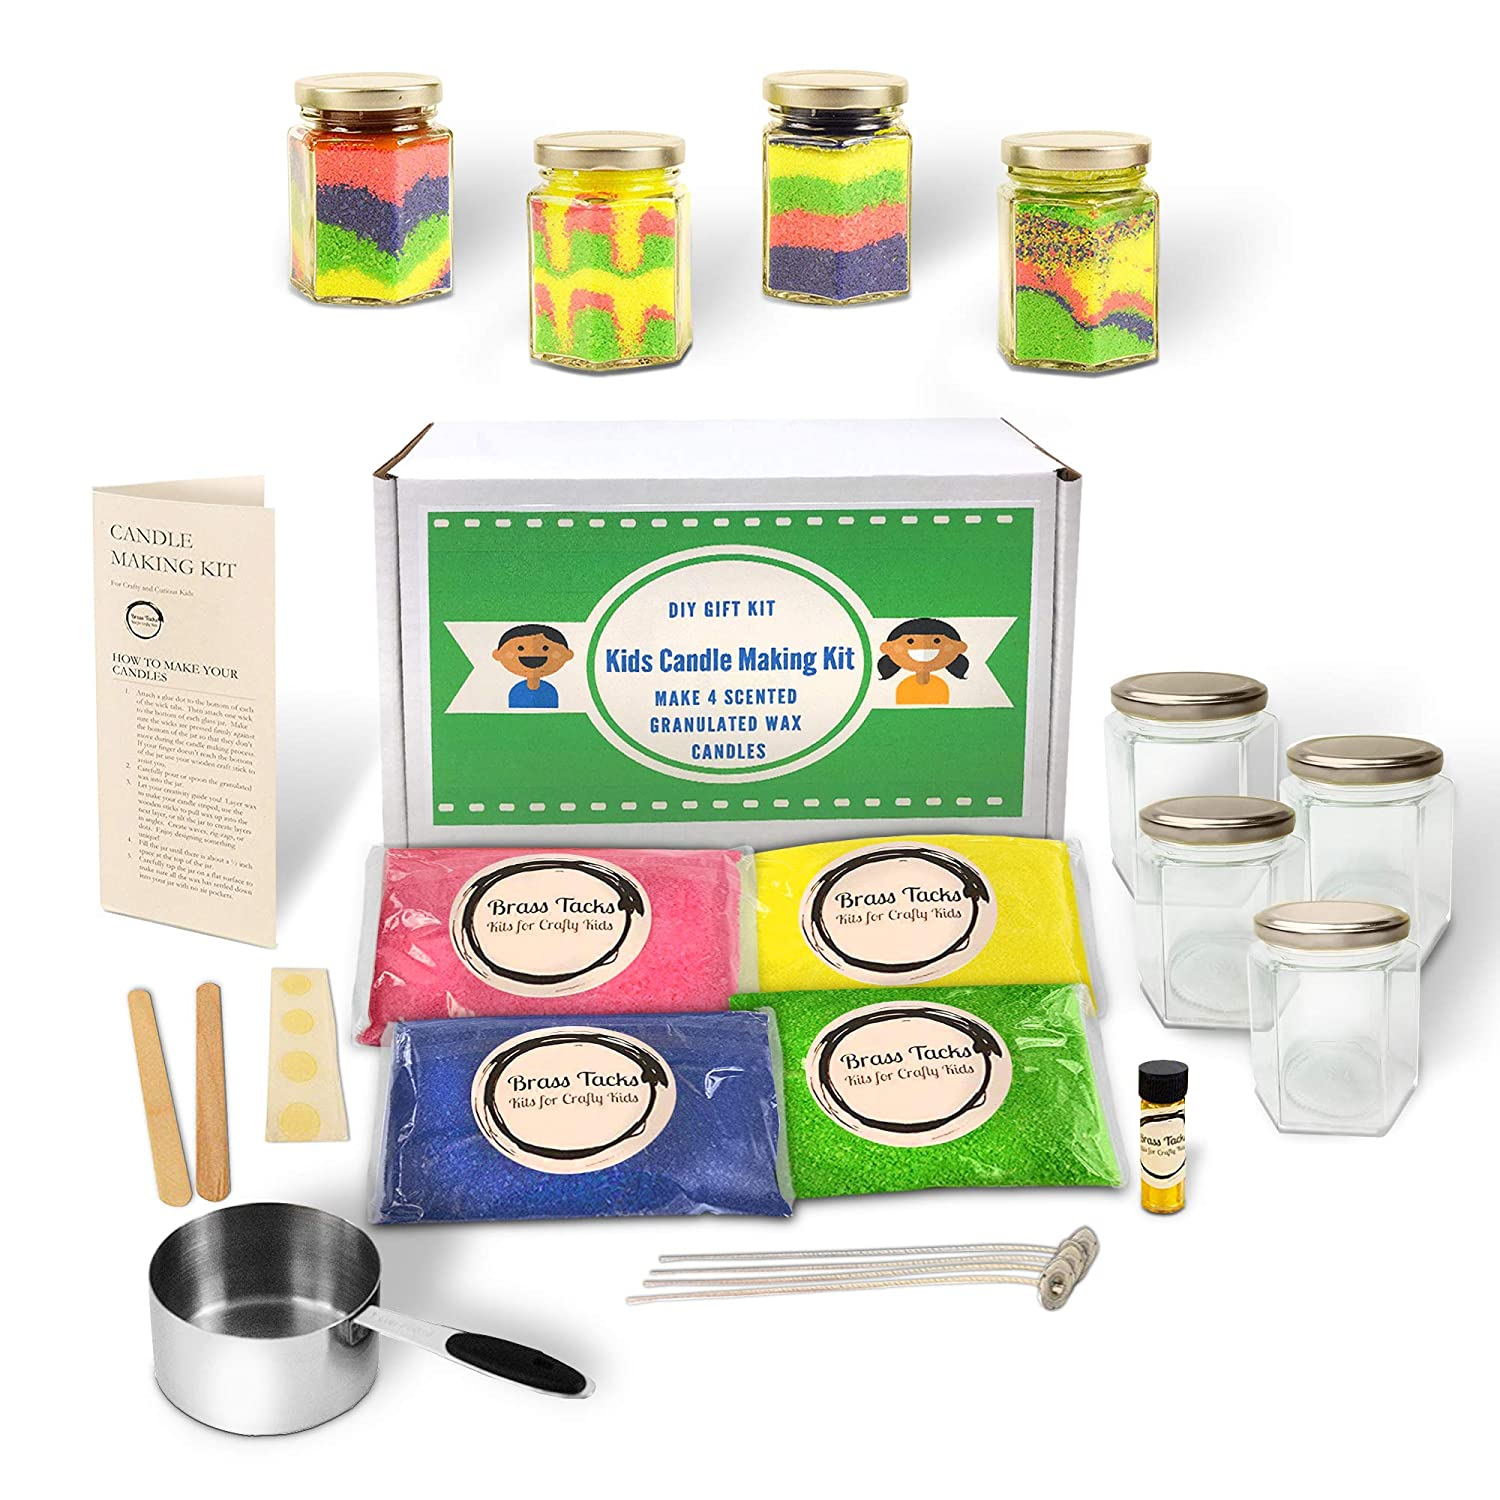 e5a7cfd41caa Amazon.com  Kids Candle Making Kit- Make 4 Scented Granulated Wax Candles-  Complete Beginners Set - Great for Parties